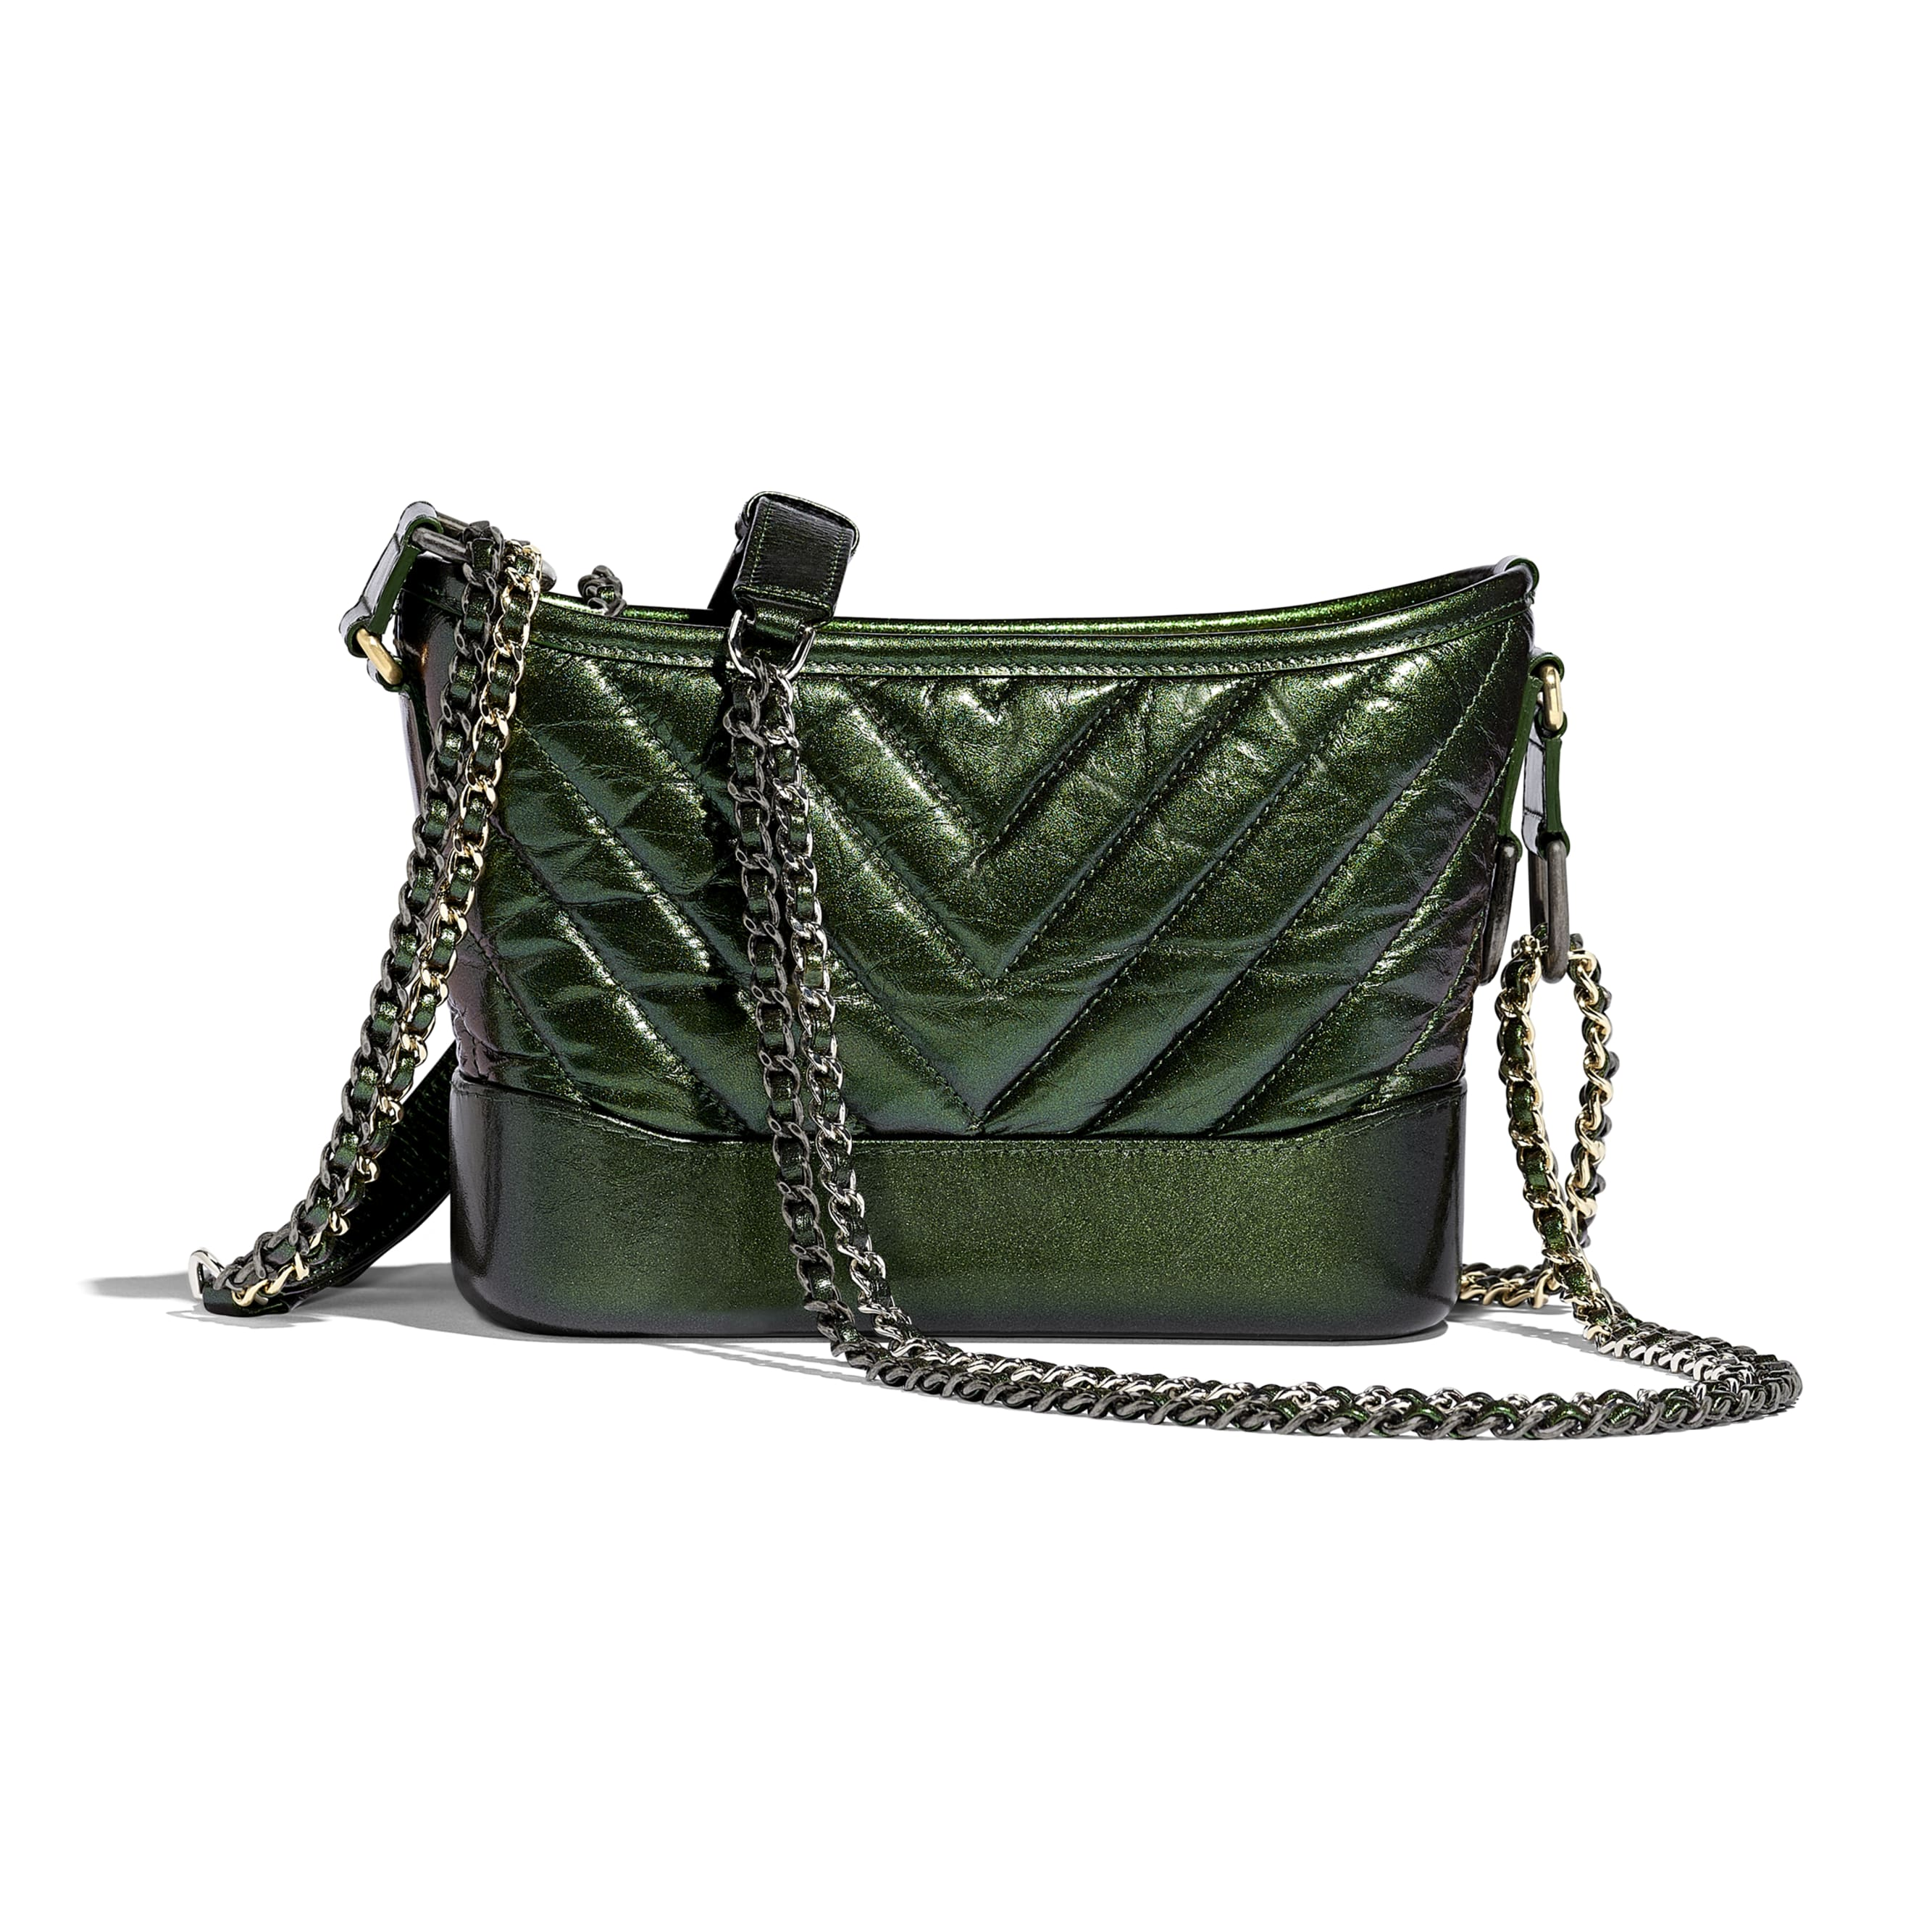 CHANEL'S GABRIELLE Small Hobo Bag - Green - Aged Calfskin, Silver-Tone & Gold-Tone Metal - CHANEL - Alternative view - see standard sized version